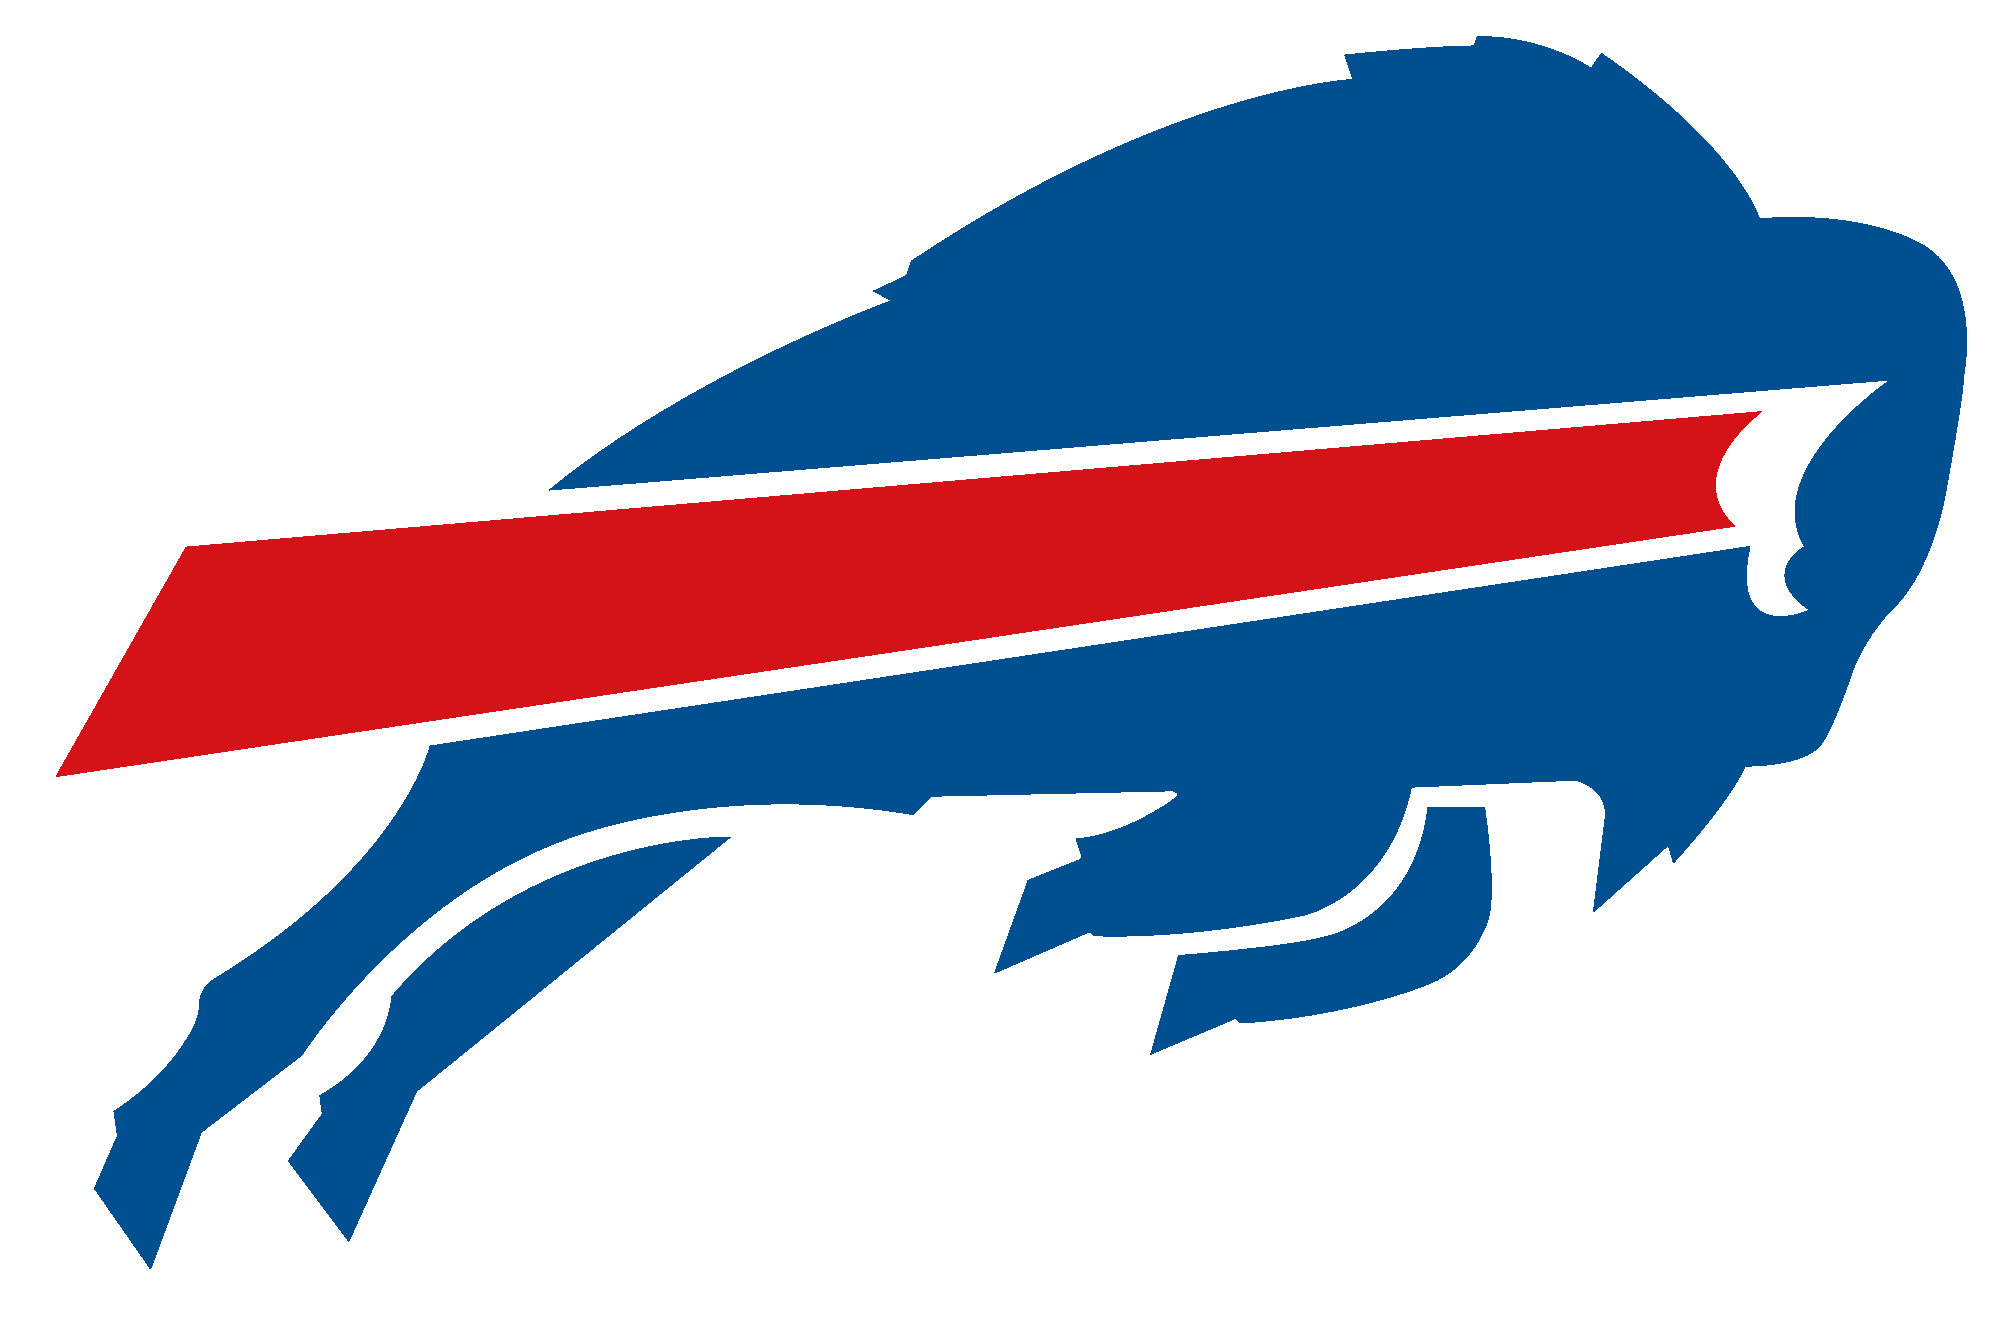 clip free library Buffalo clipart black and white. Bills logo free on.